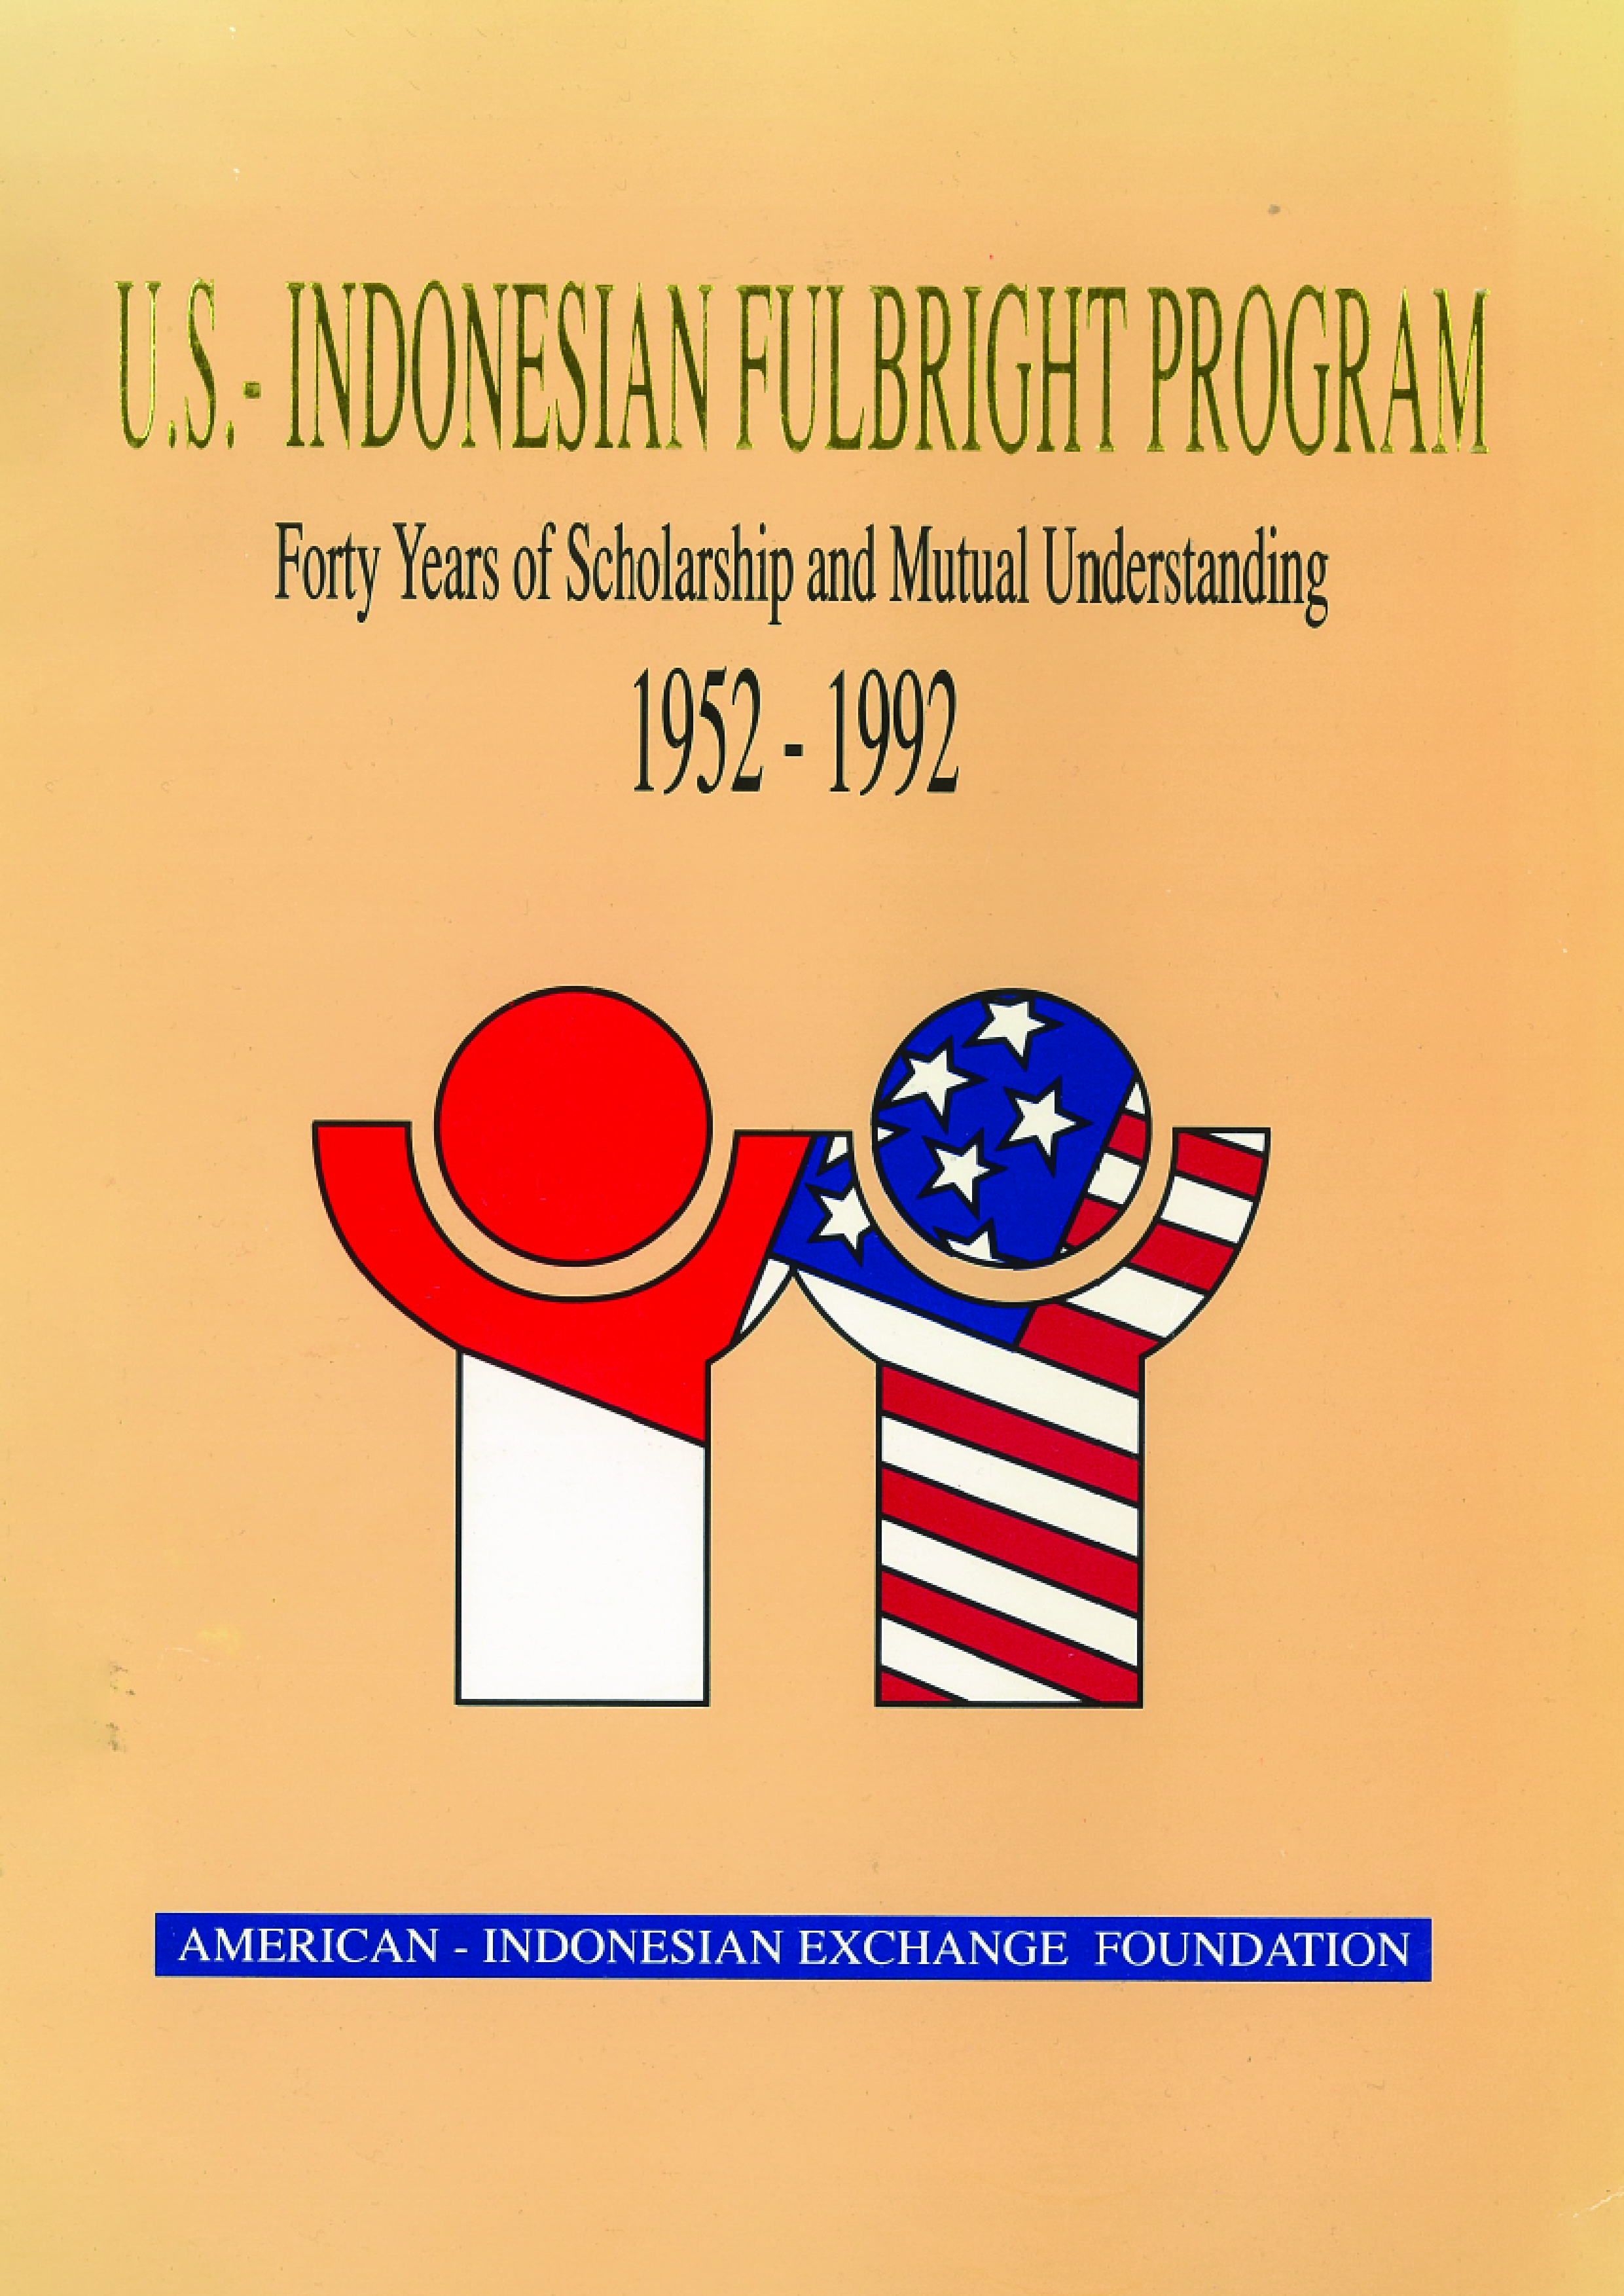 U.S Indonesian Fulbright Program – Forty Years of Scholarships and Mutual Understanding